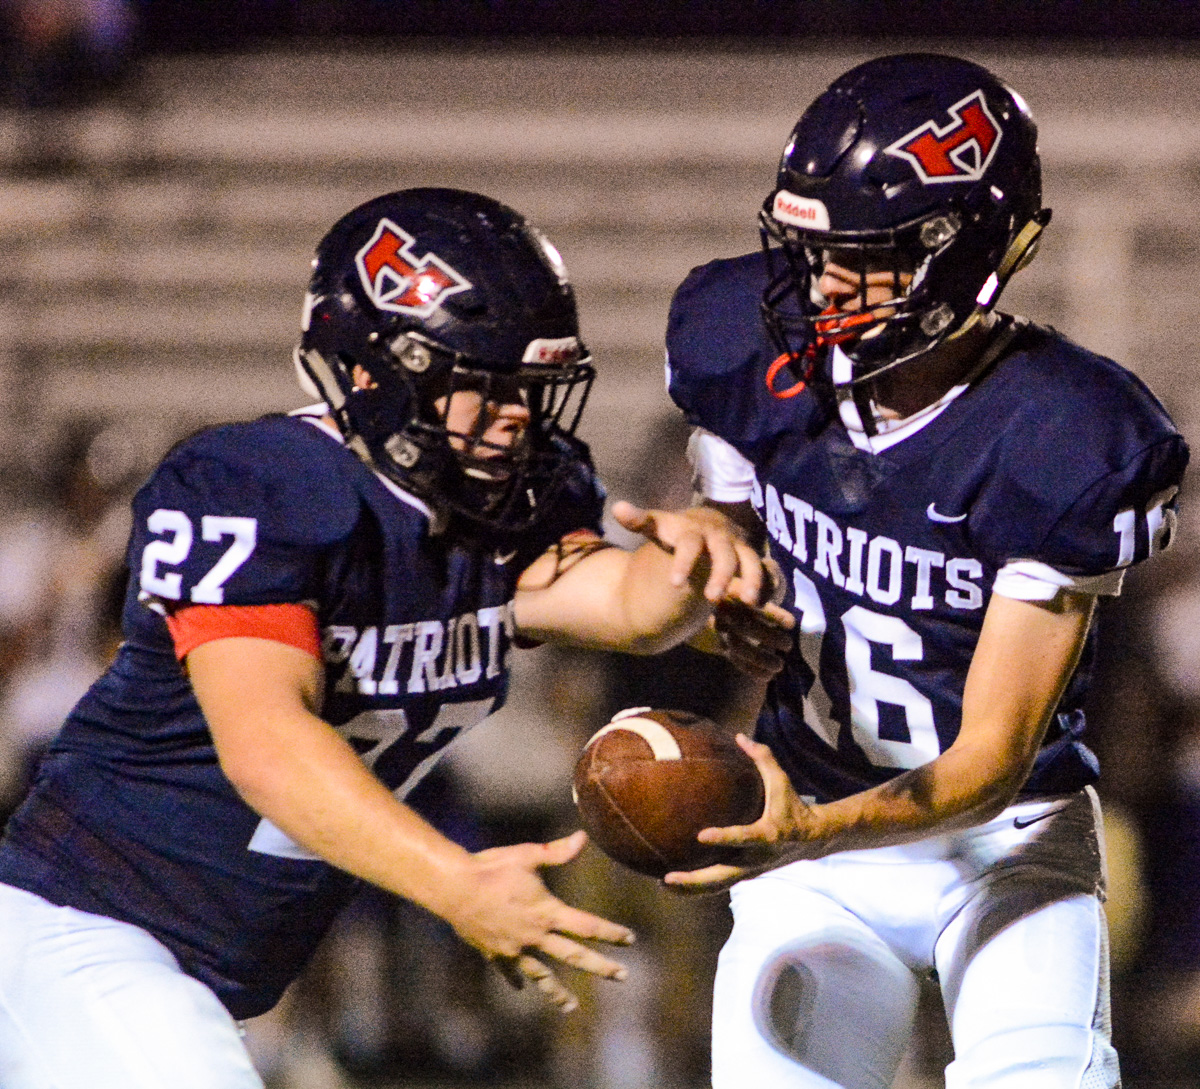 HS Football: Vote for Heritage QB, Will Wilson, for Robertson County Player of the Week 3